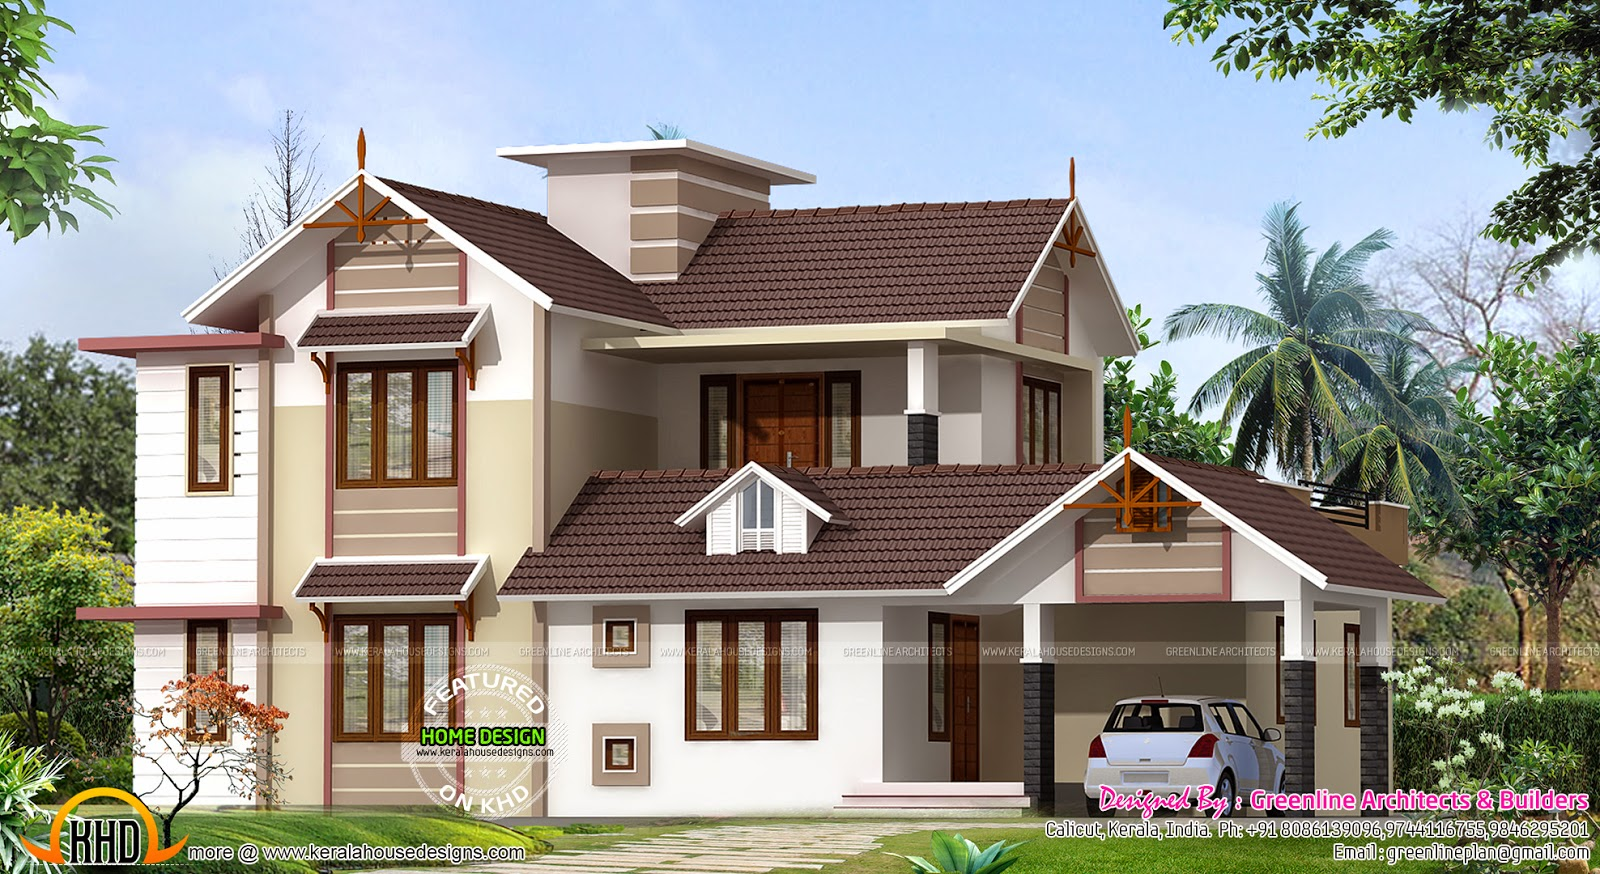 2400 sq ft new house design kerala home design and floor for House plans with photos in kerala style